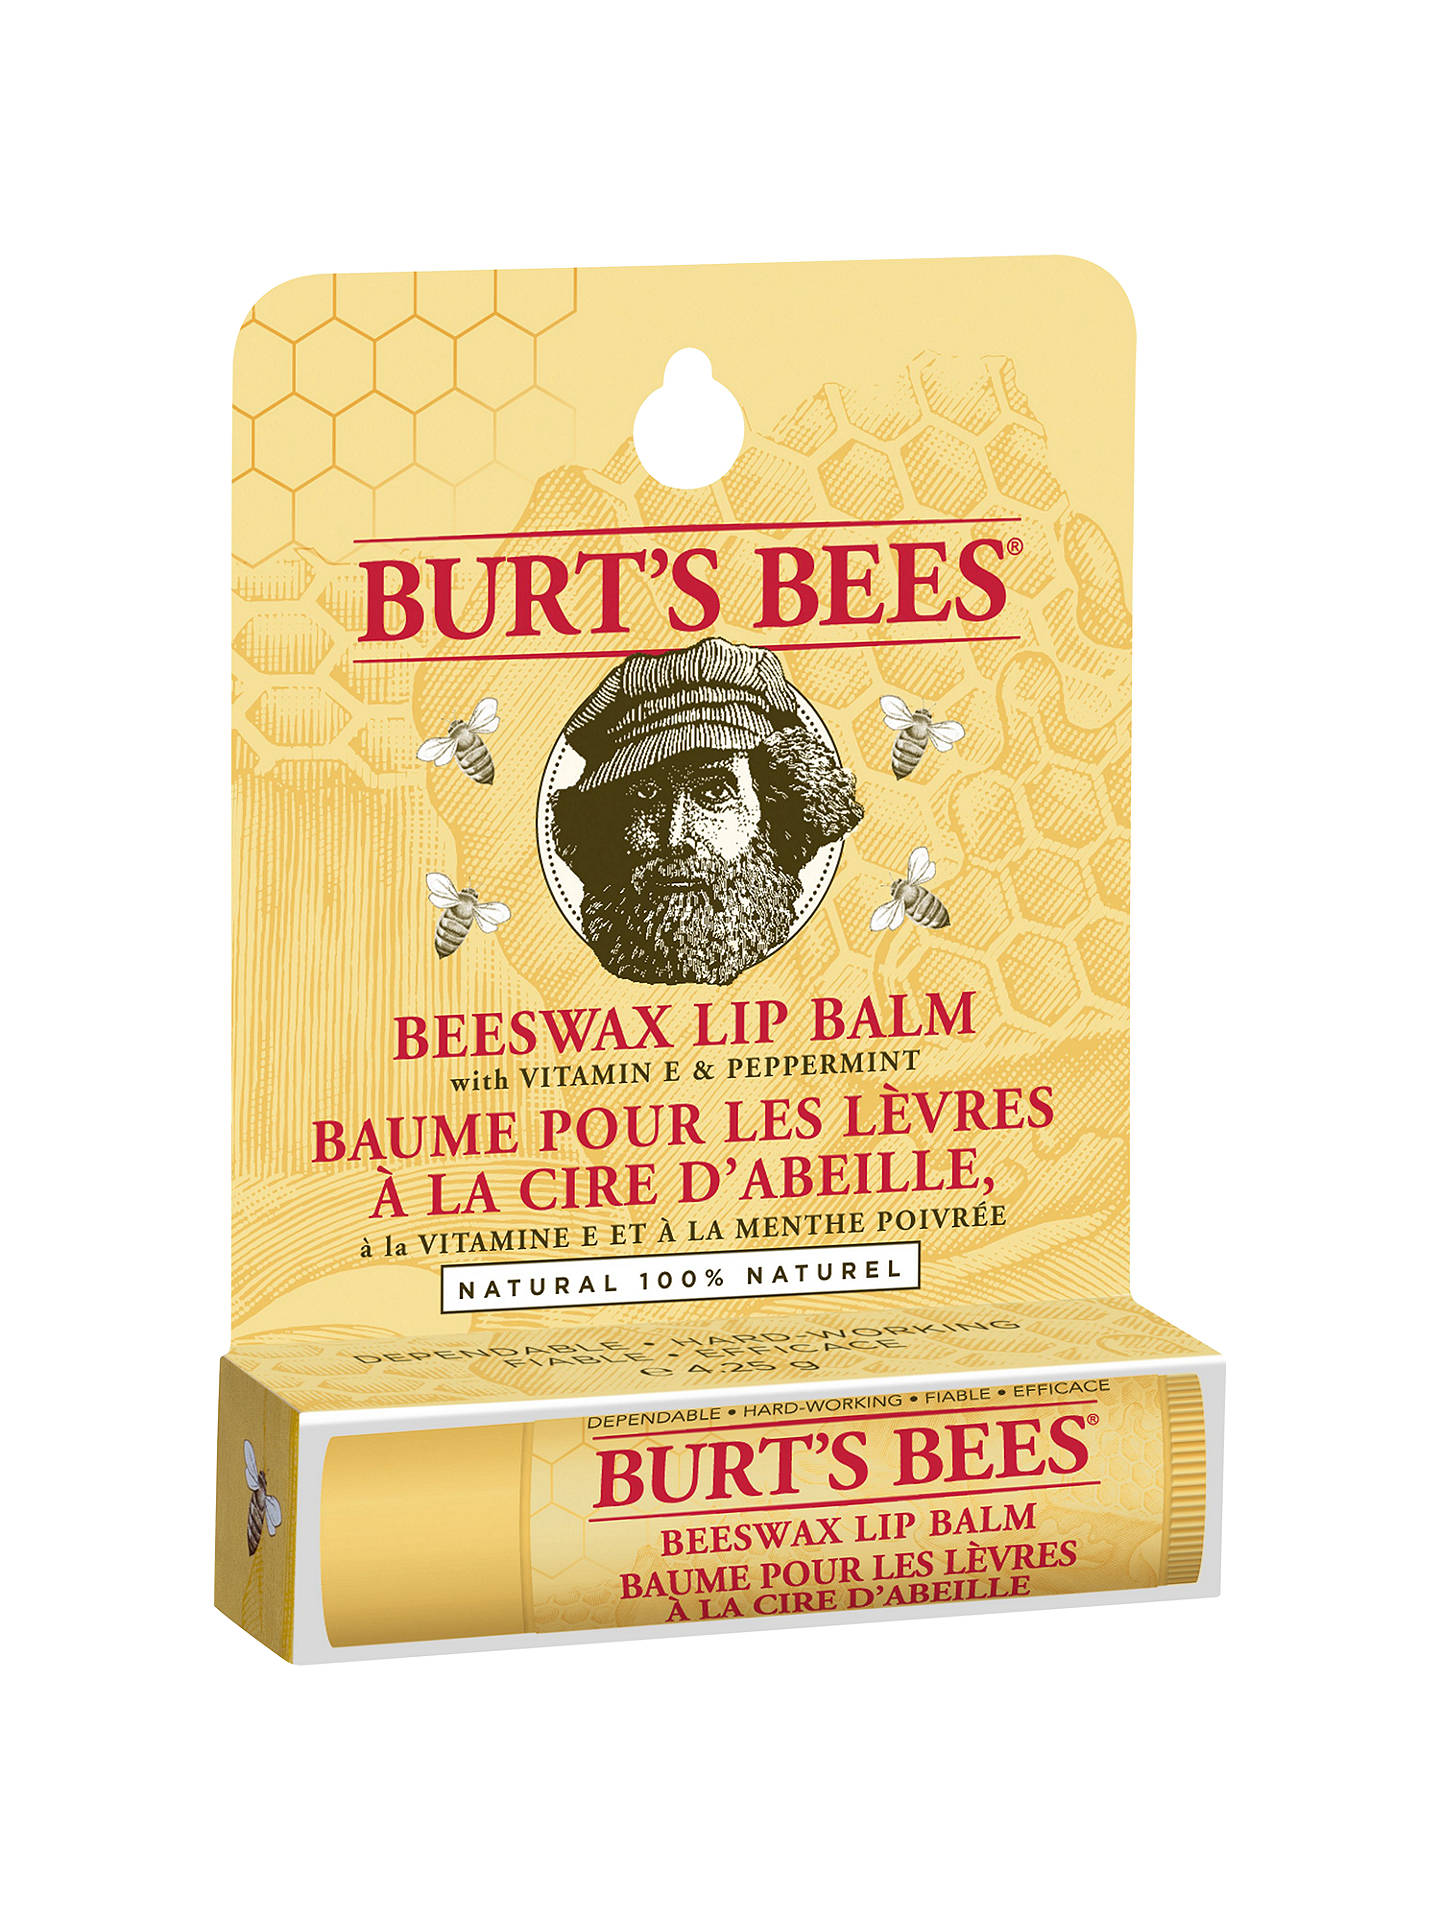 BuyBurt's Bees Beeswax Lip Balm, 4.25g Online at johnlewis.com